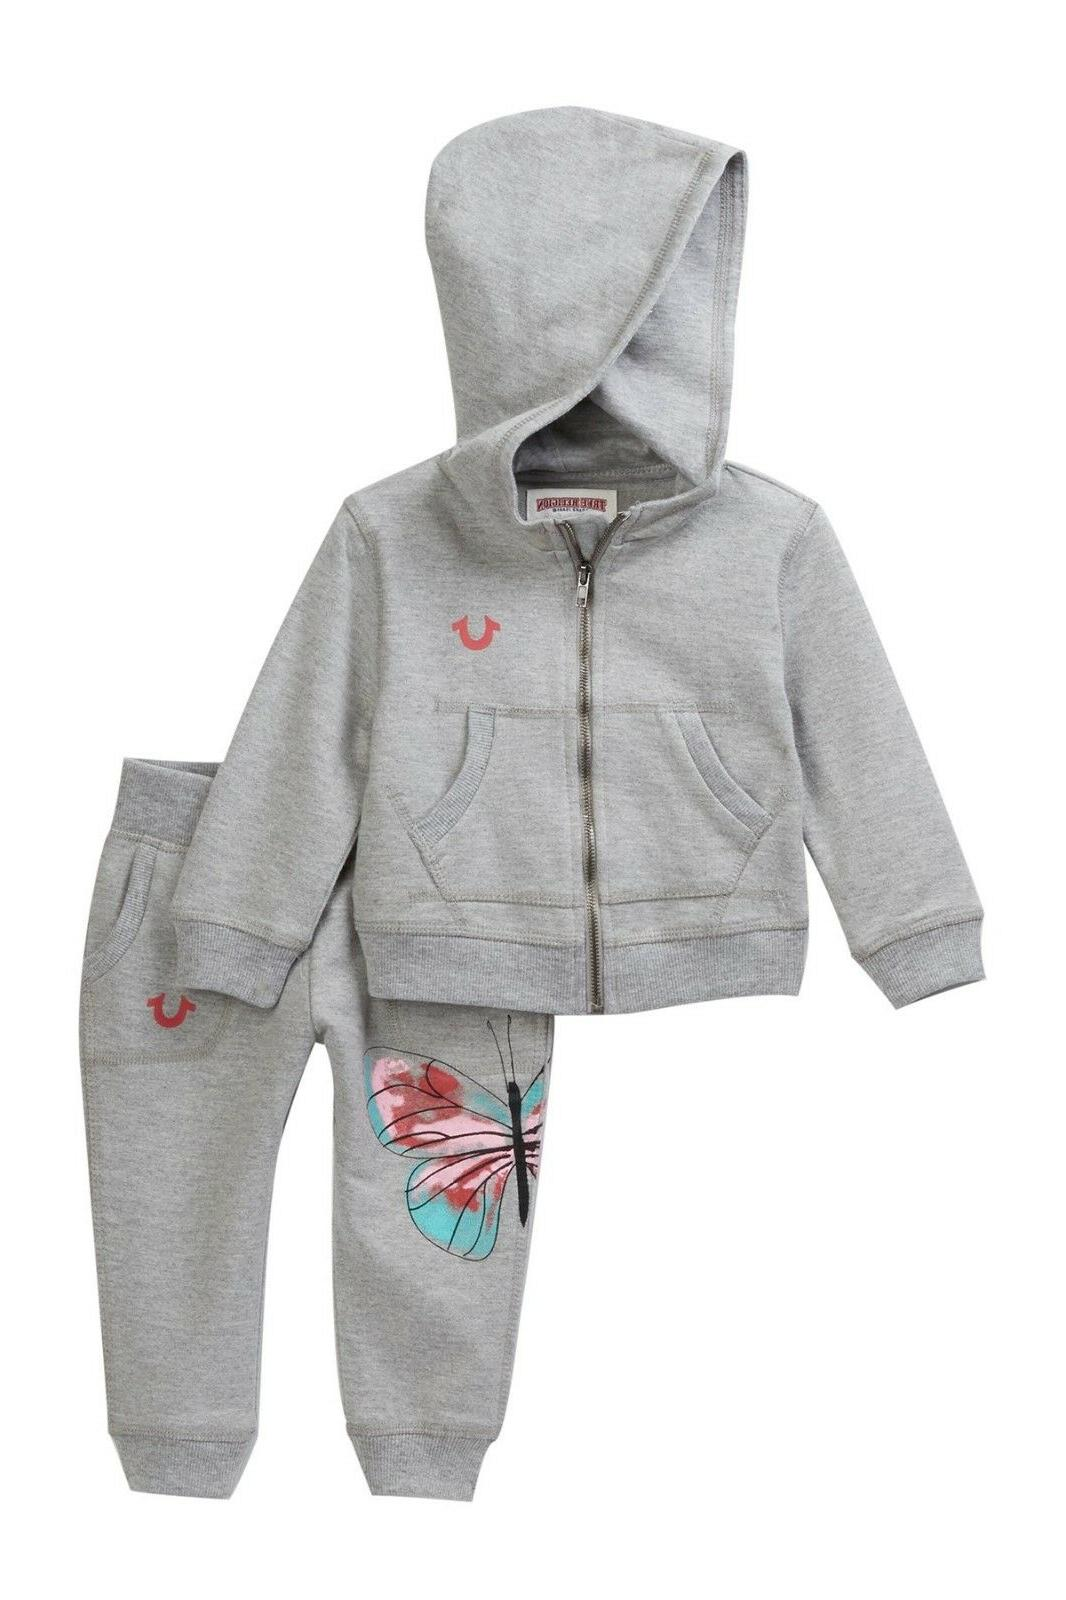 nwt 79 french terry sweatsuit baby girls